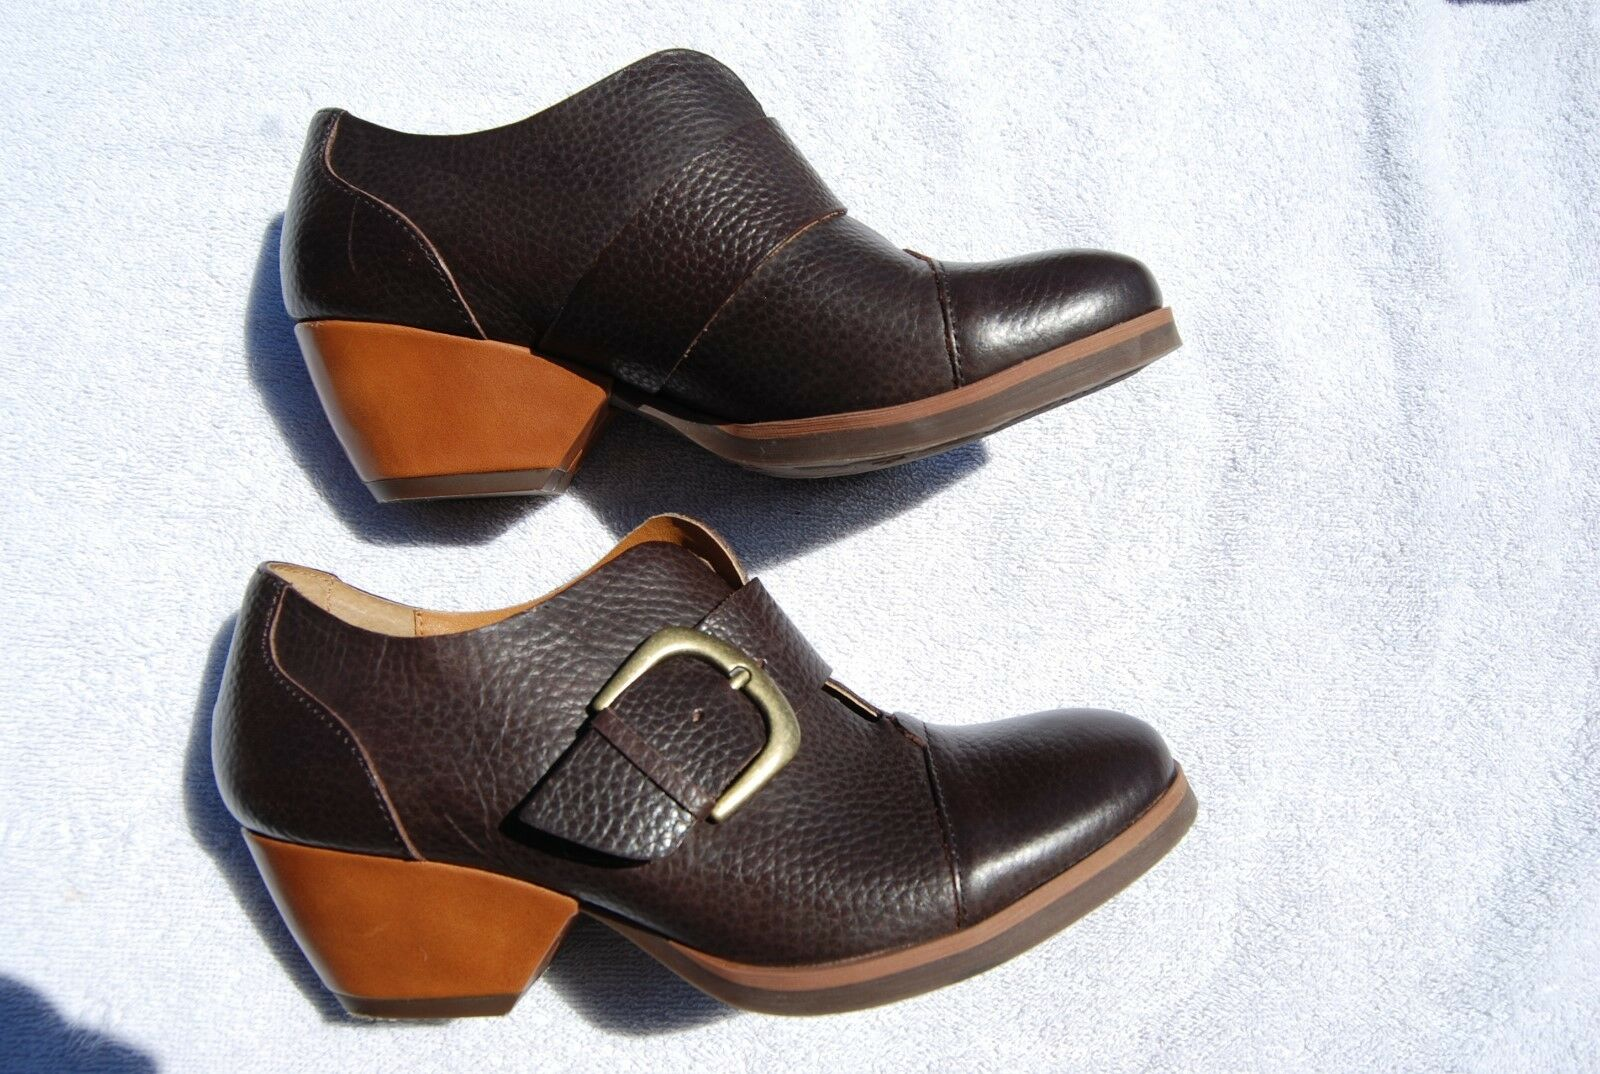 Dark Braun Leder KORKS By KORK EASE PUmps 6 w/Strap & BIg Buckle 6 PUmps M 2c58c7